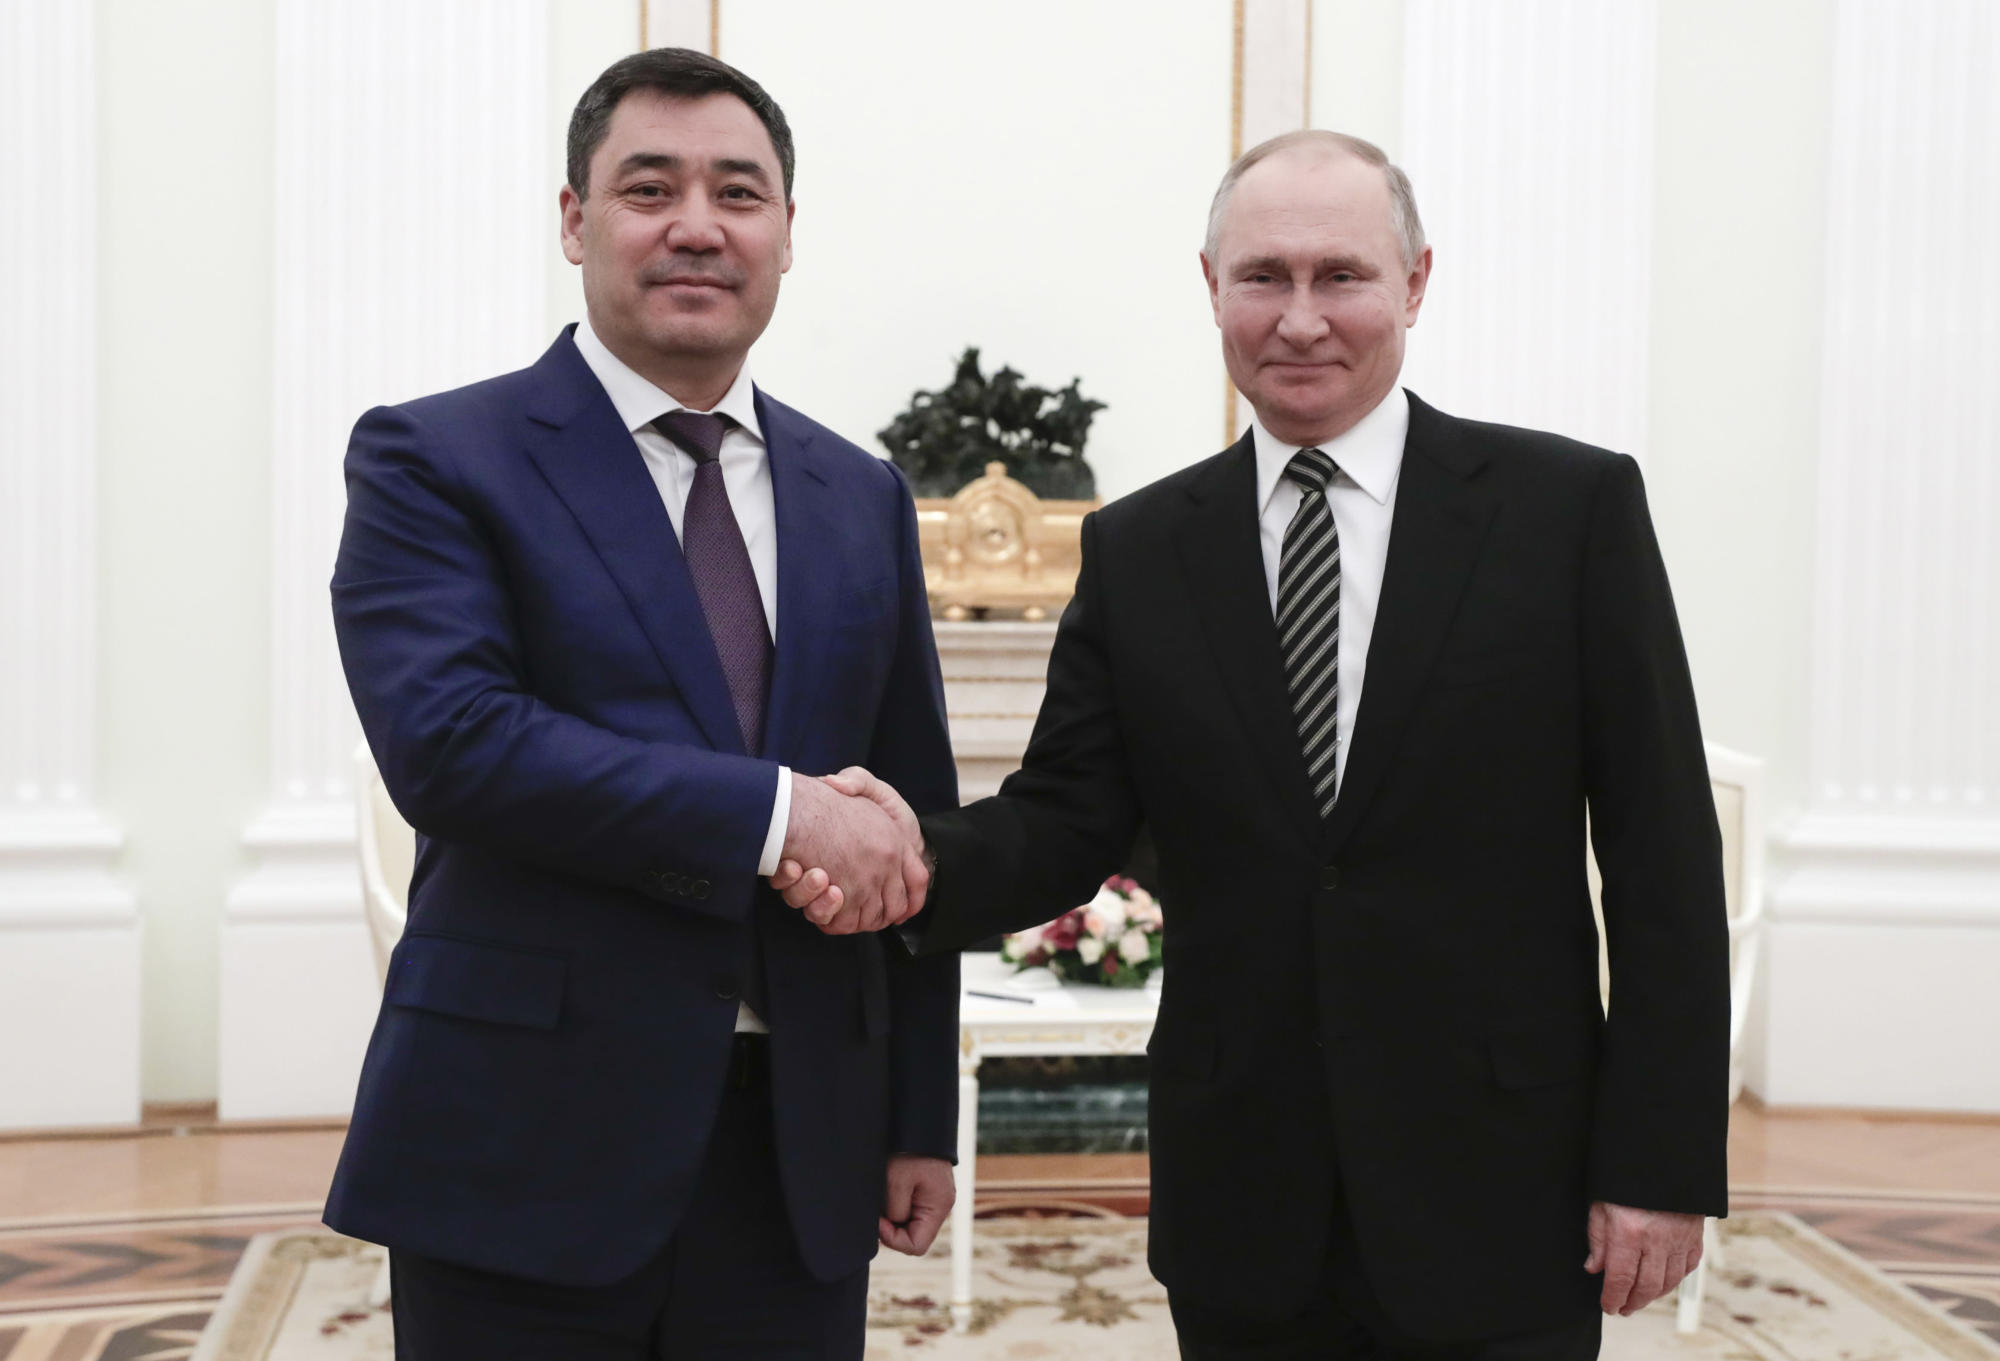 Russia hosts new Kyrgyzstan leader on his 1st foreign trip